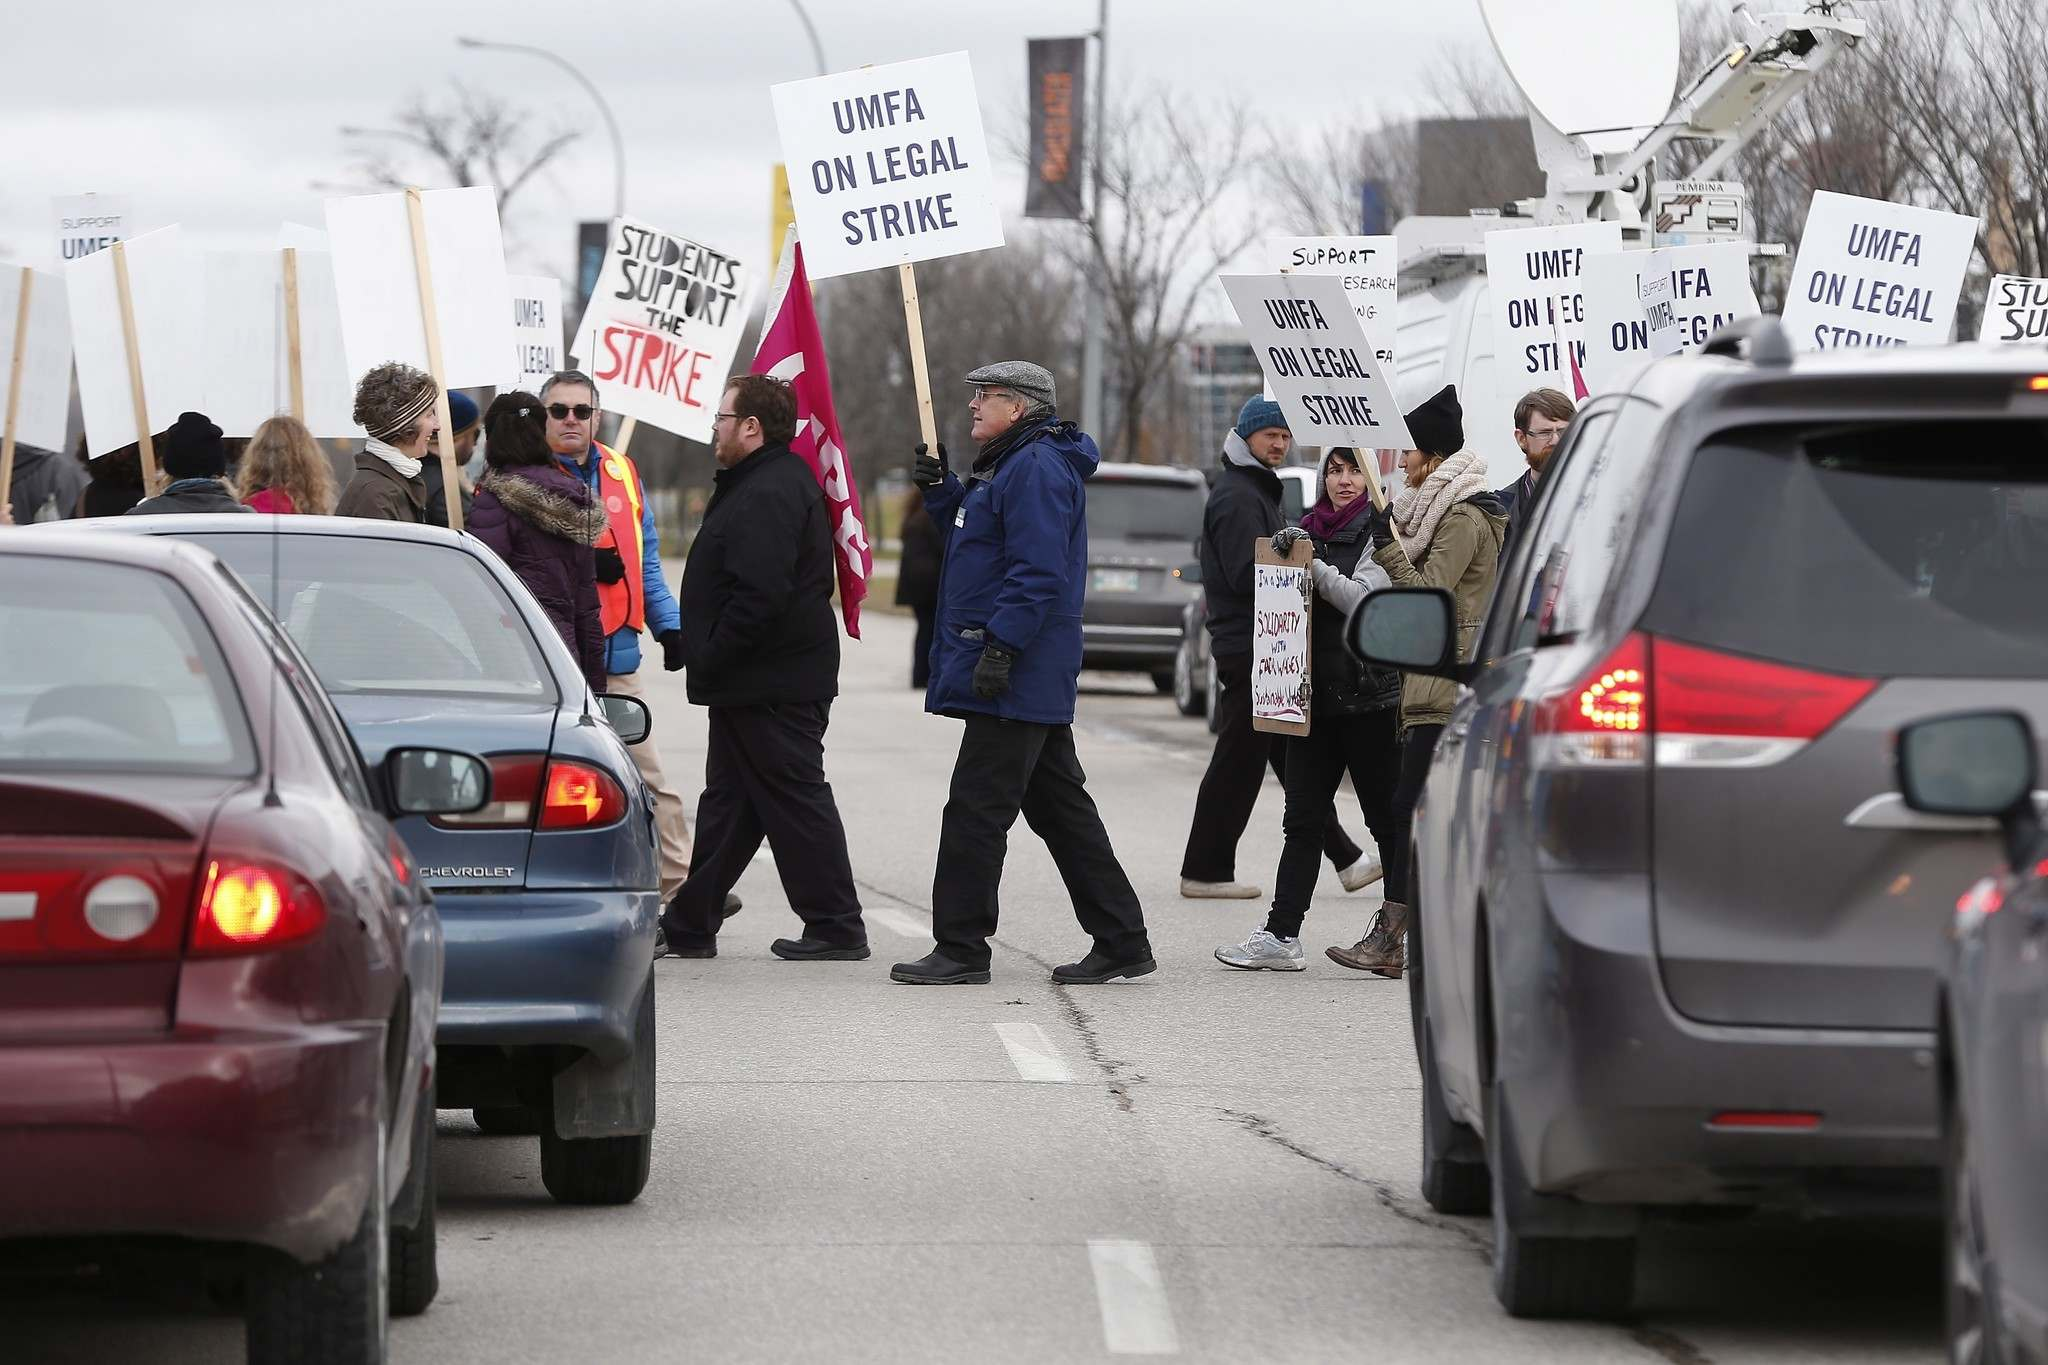 University of Manitoba Faculty Association (UMFA) went on strike and hit the picket lines at the entrance to the university in Winnipeg, Tuesday, November 1, 2016. (John Woods / The Canadian Press files)</p>